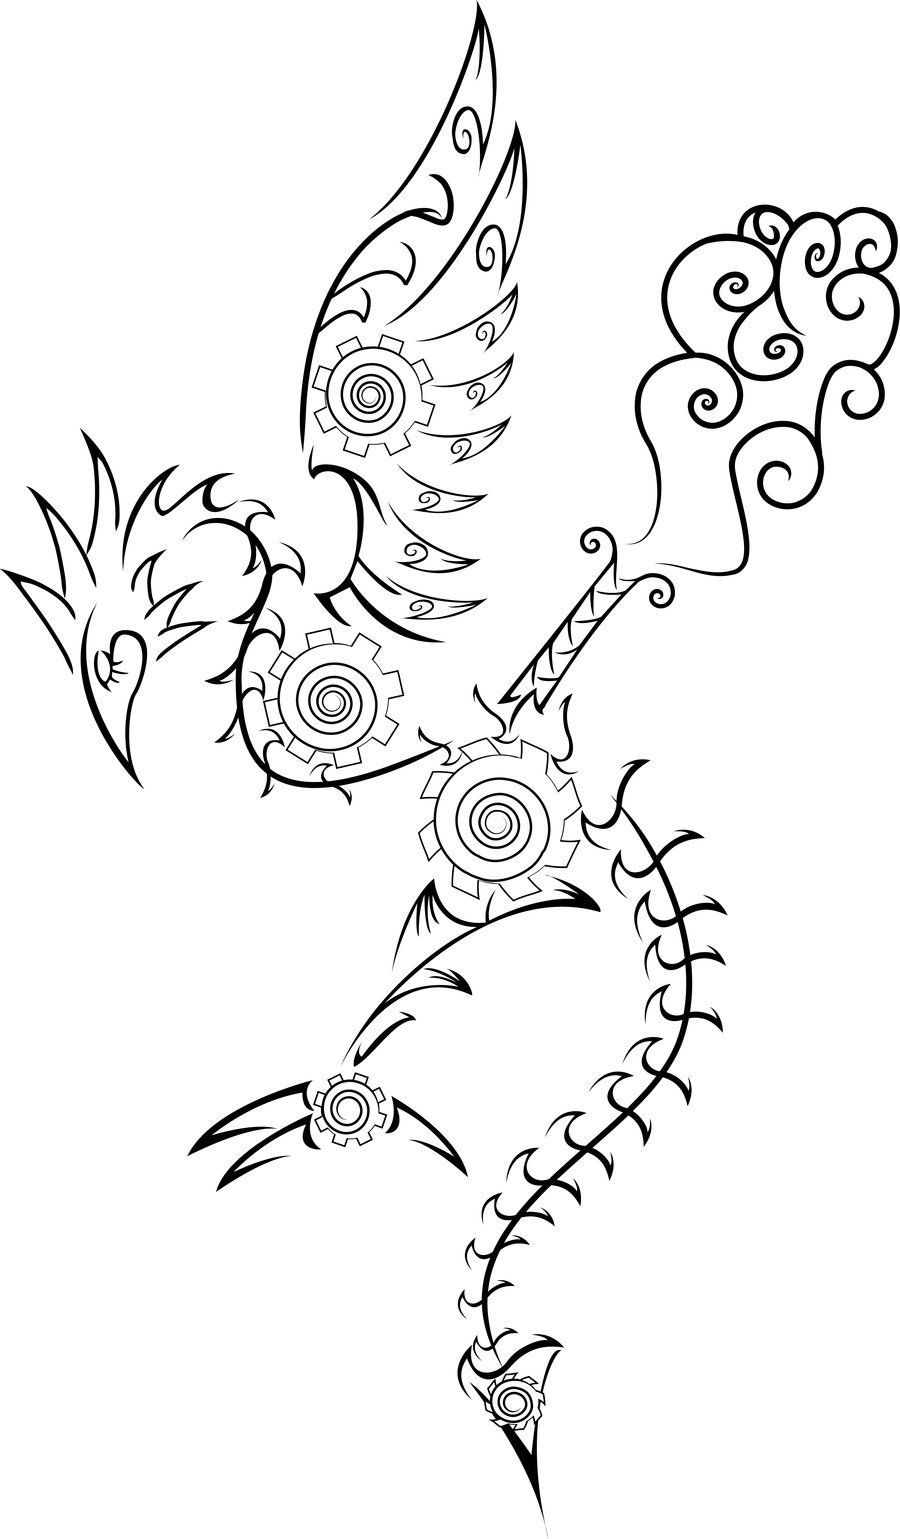 Except more filigree and less steampunk.  More dragon-like face too.   No steam coming out of the back and maybe more drawn out wings instead